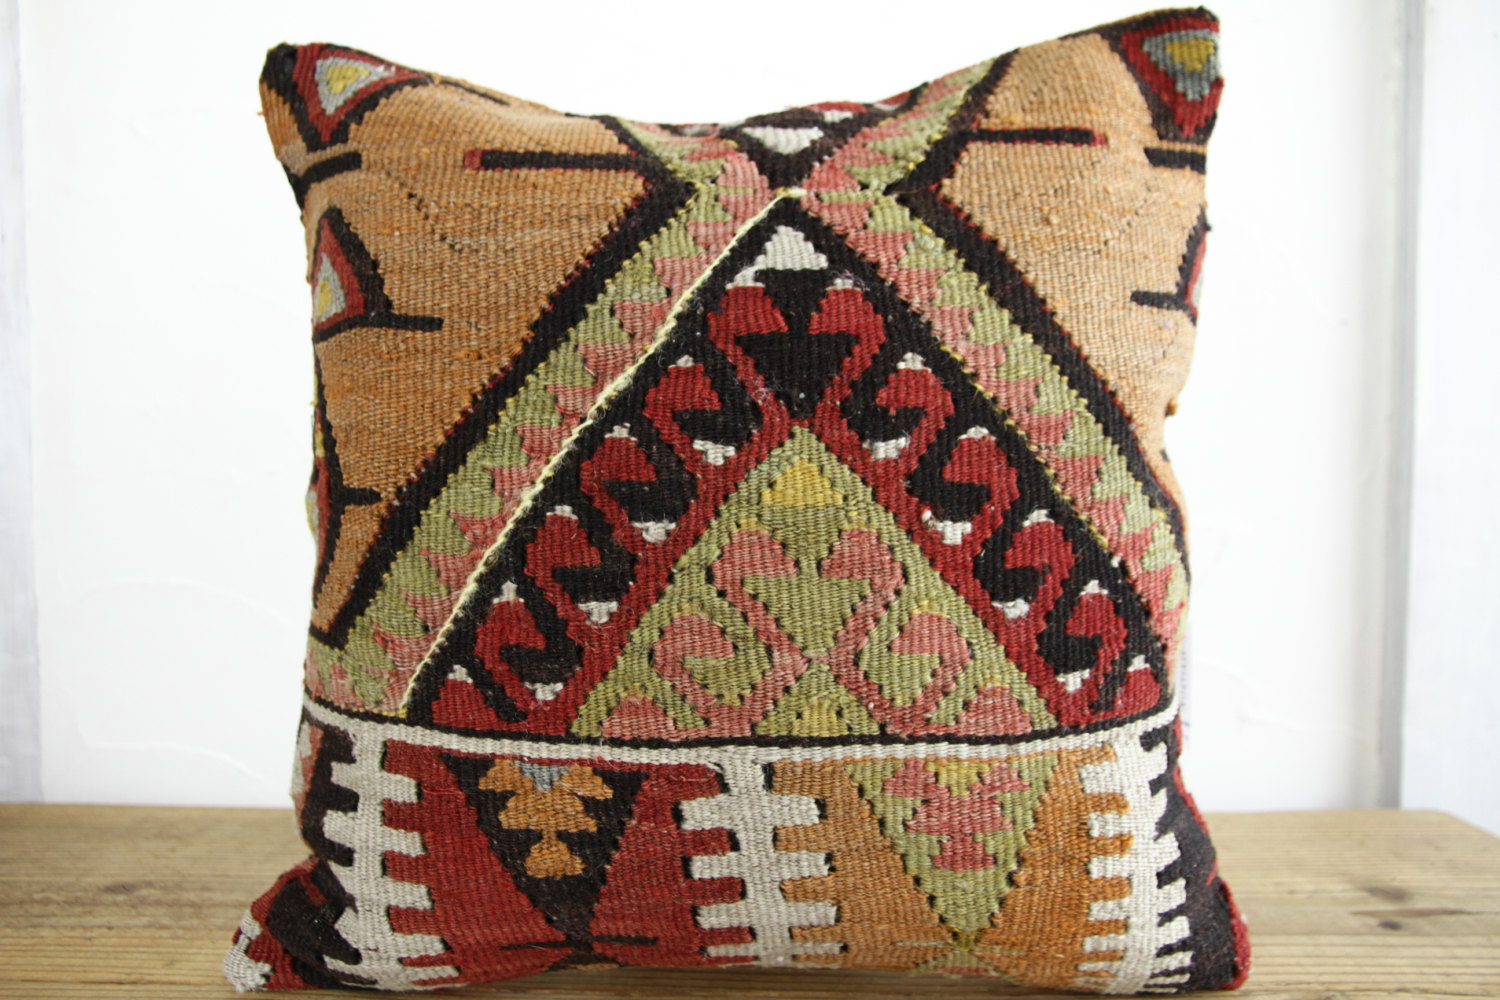 Kilim Pillows |16x16 | Decorative Pillows | 167 | Accent Pillows, Kilim cushion